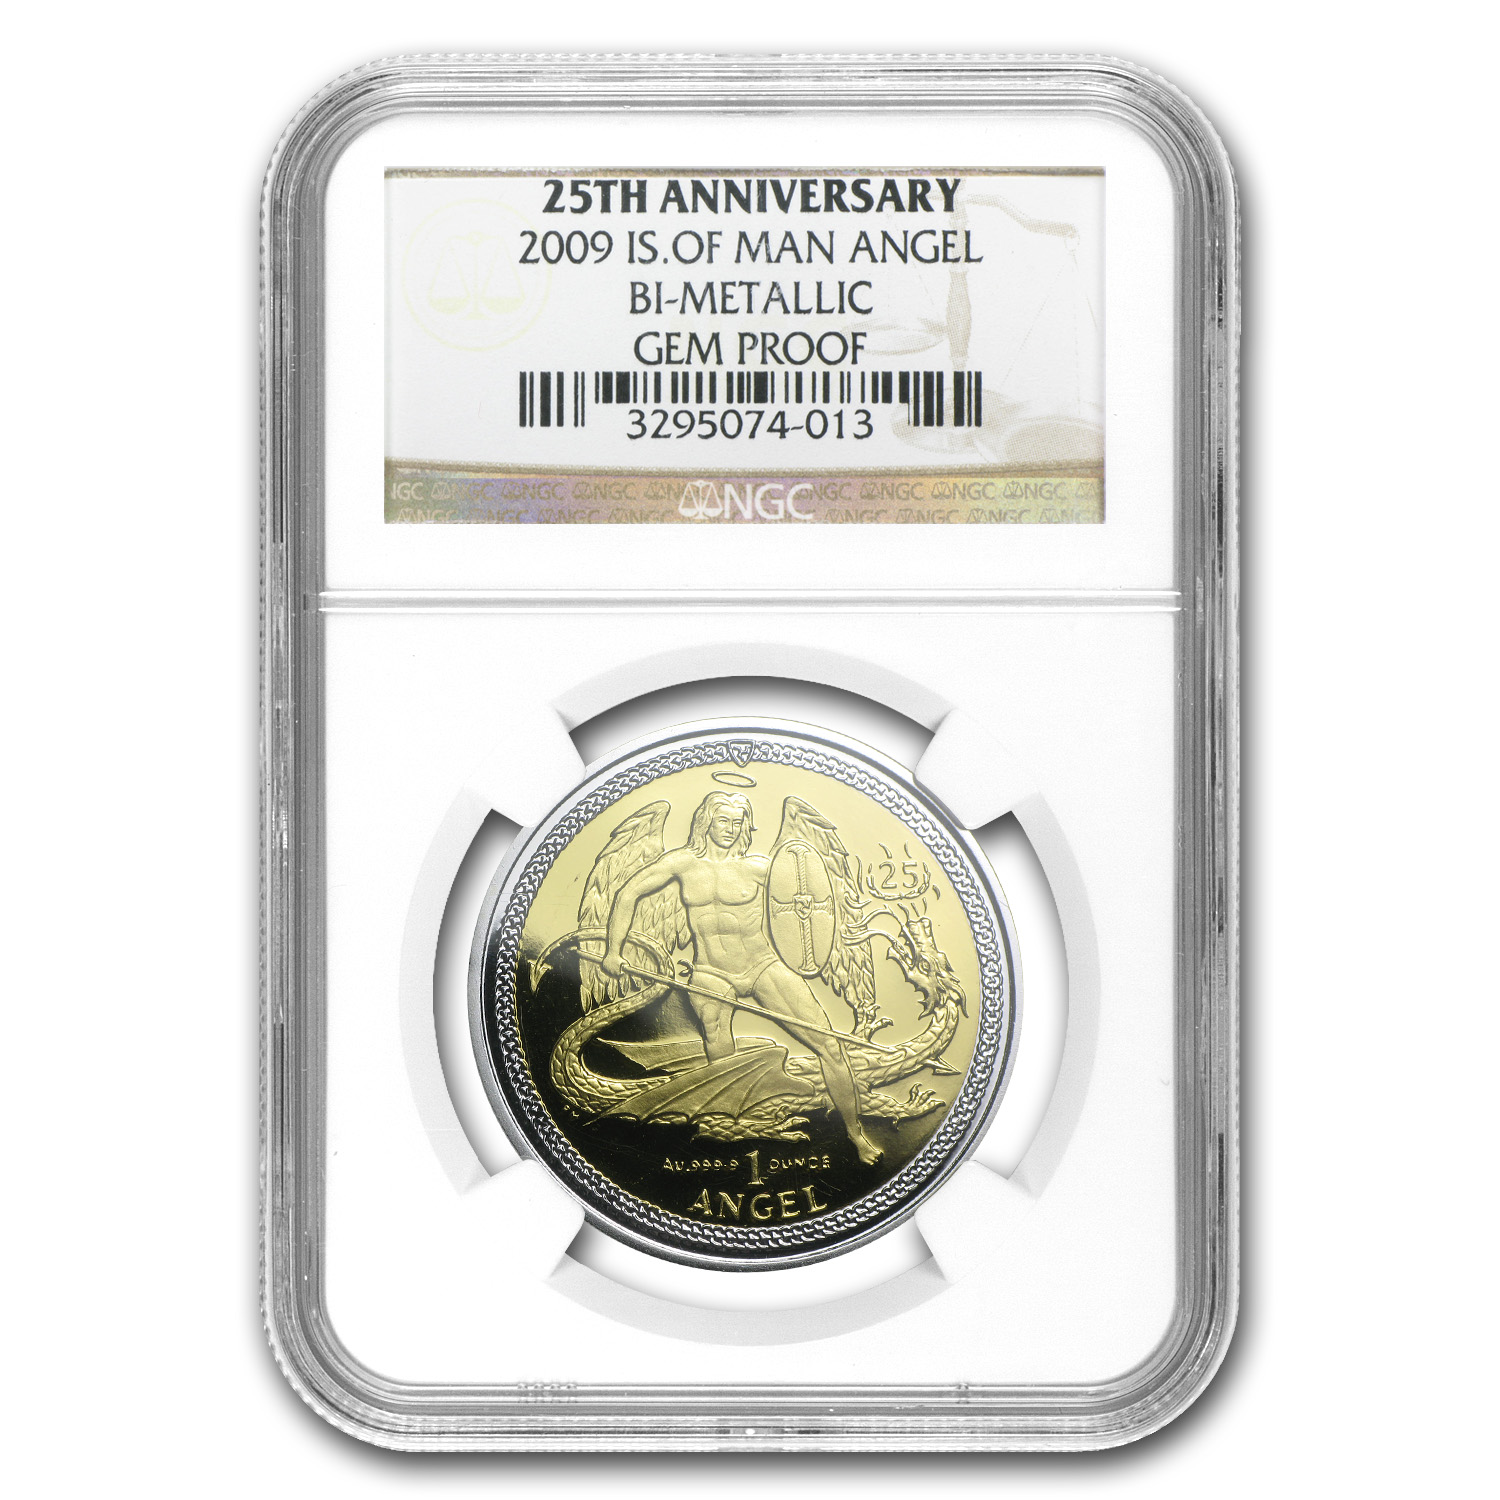 Isle of Man 2009 Bi-Metallic Angel 25th Anniversary Gem Proof NGC